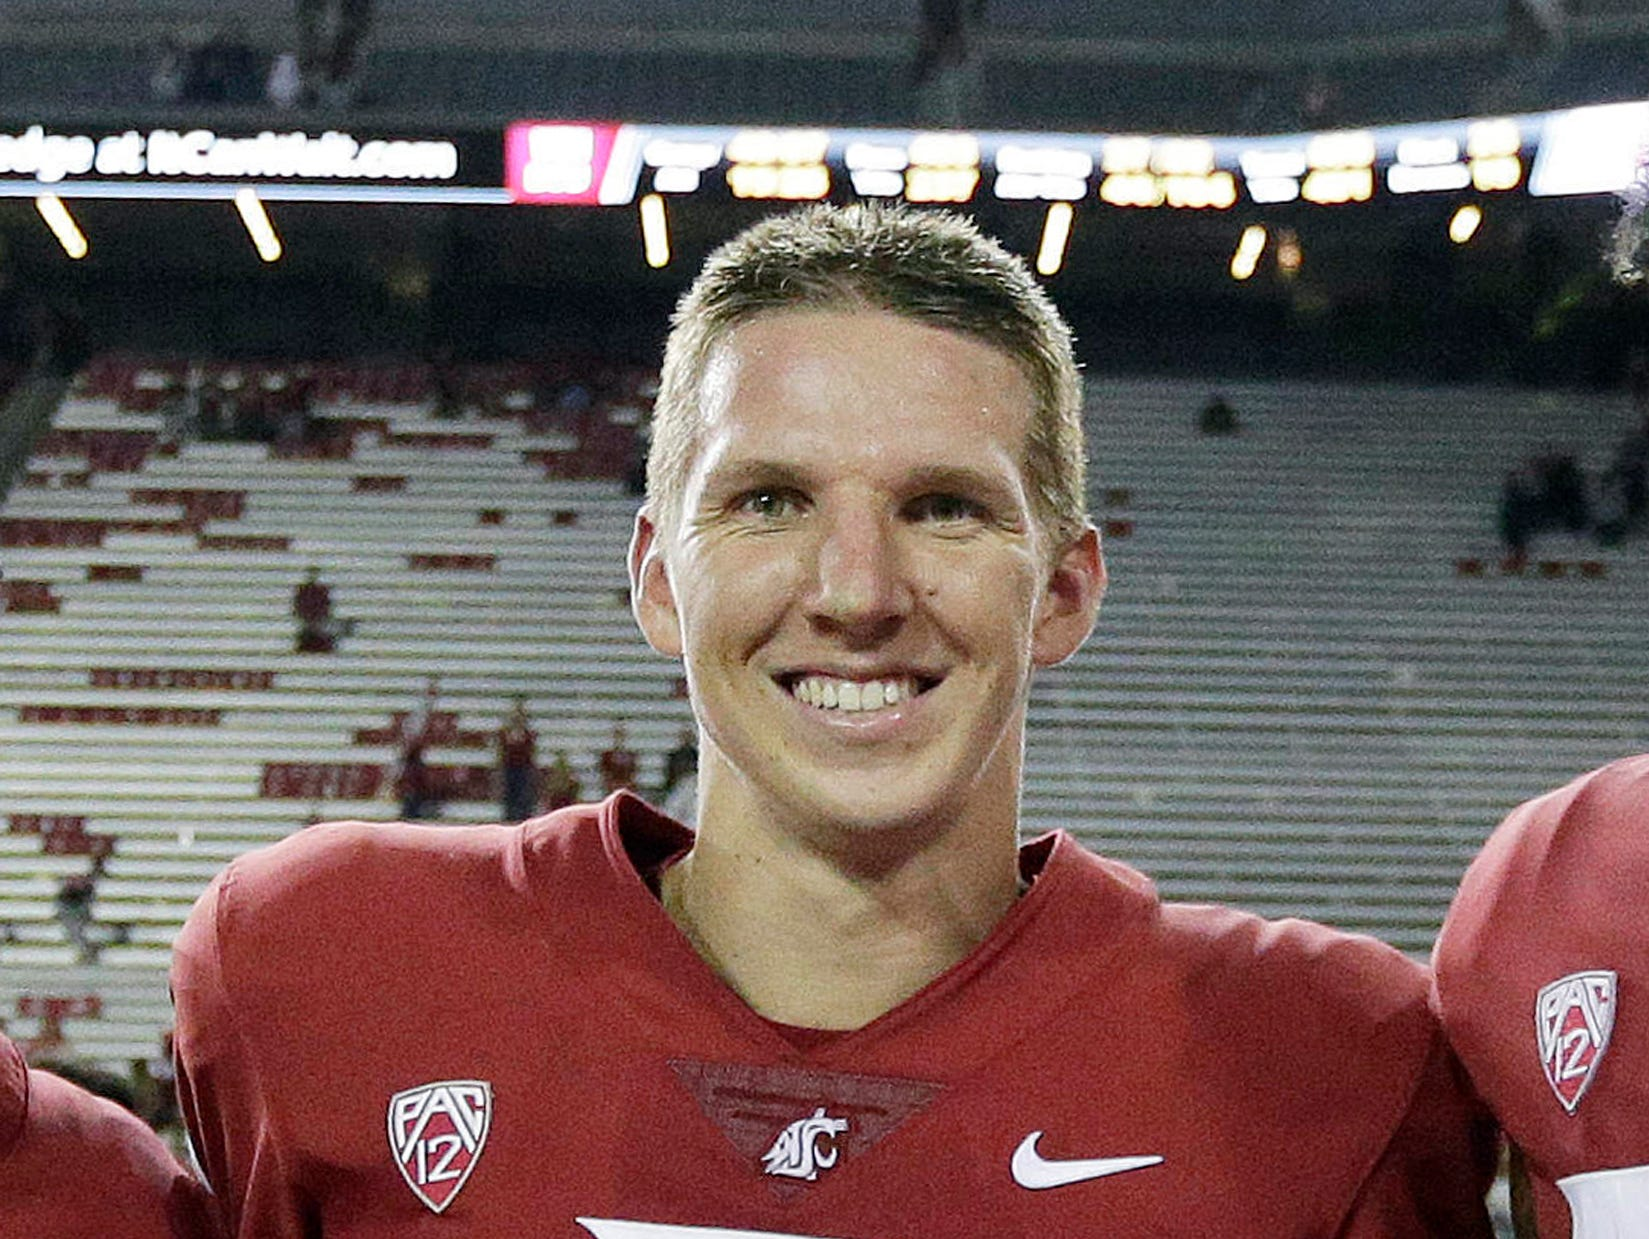 FILE - In this Sept. 9, 2017, file photo, Washington State quarterback Tyler Hilinski poses for a photo after an NCAA college football game against Boise State in Pullman, Wash. Hilinski's death from a self-inflicted gunshot wound was among the state's top news stories of 2018. (AP Photo/Young Kwak, File)